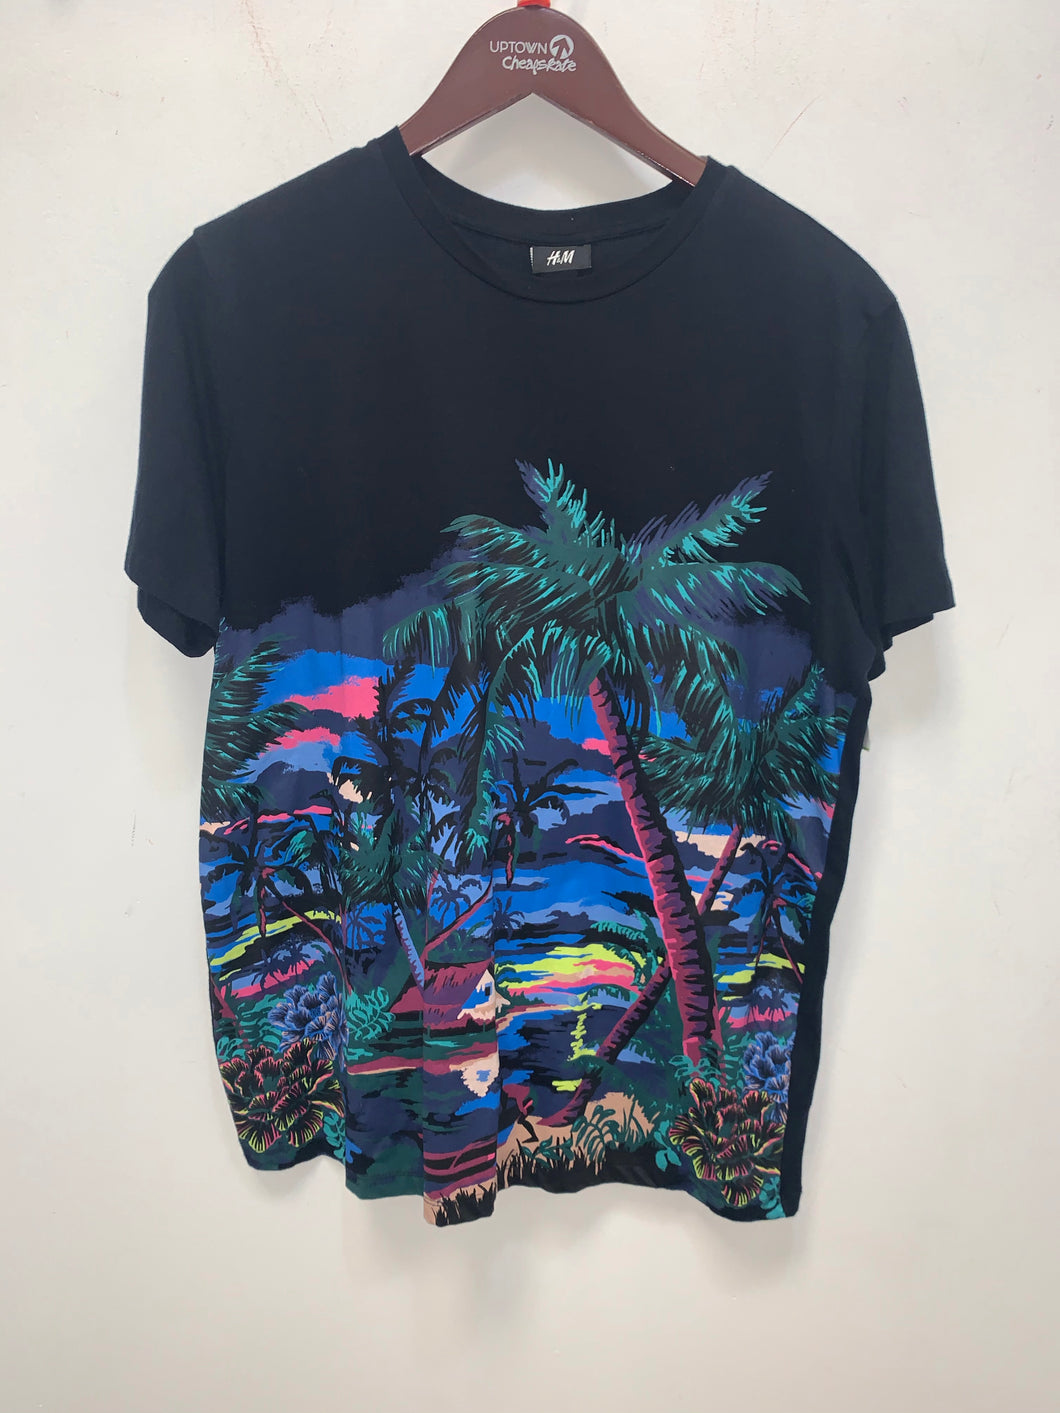 H&M- size M